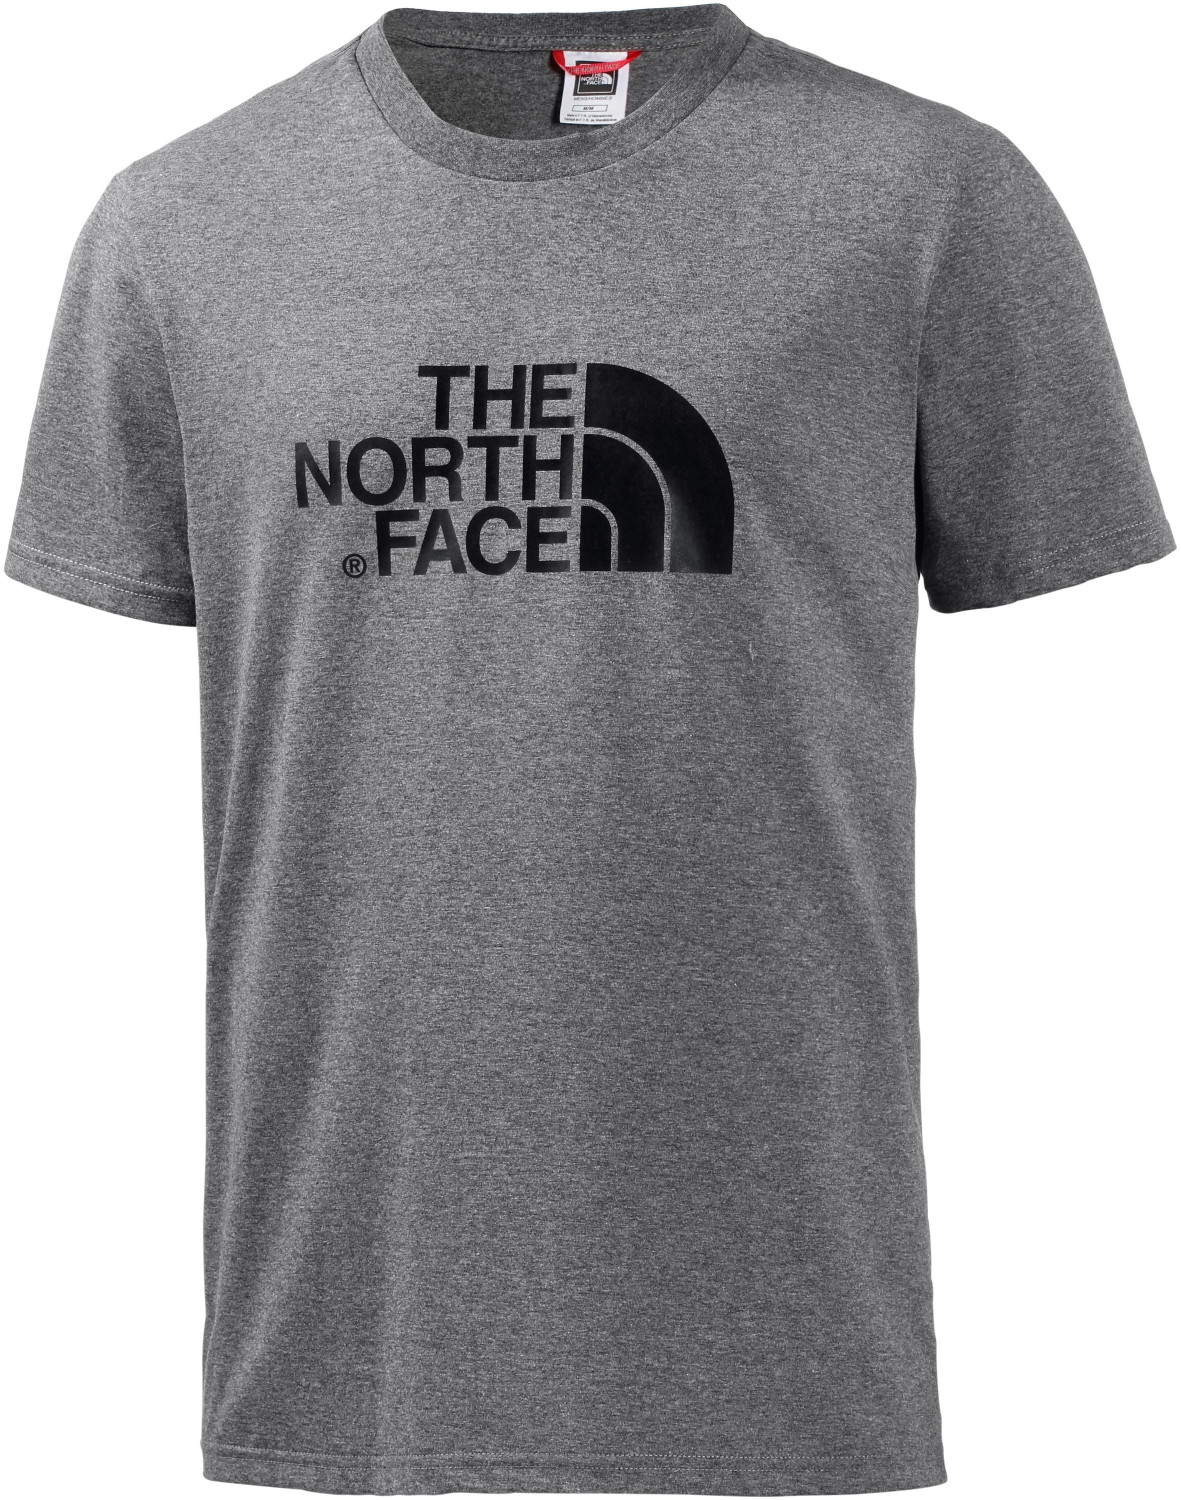 The North Face Men's S/S Easy Tee medium grey heather